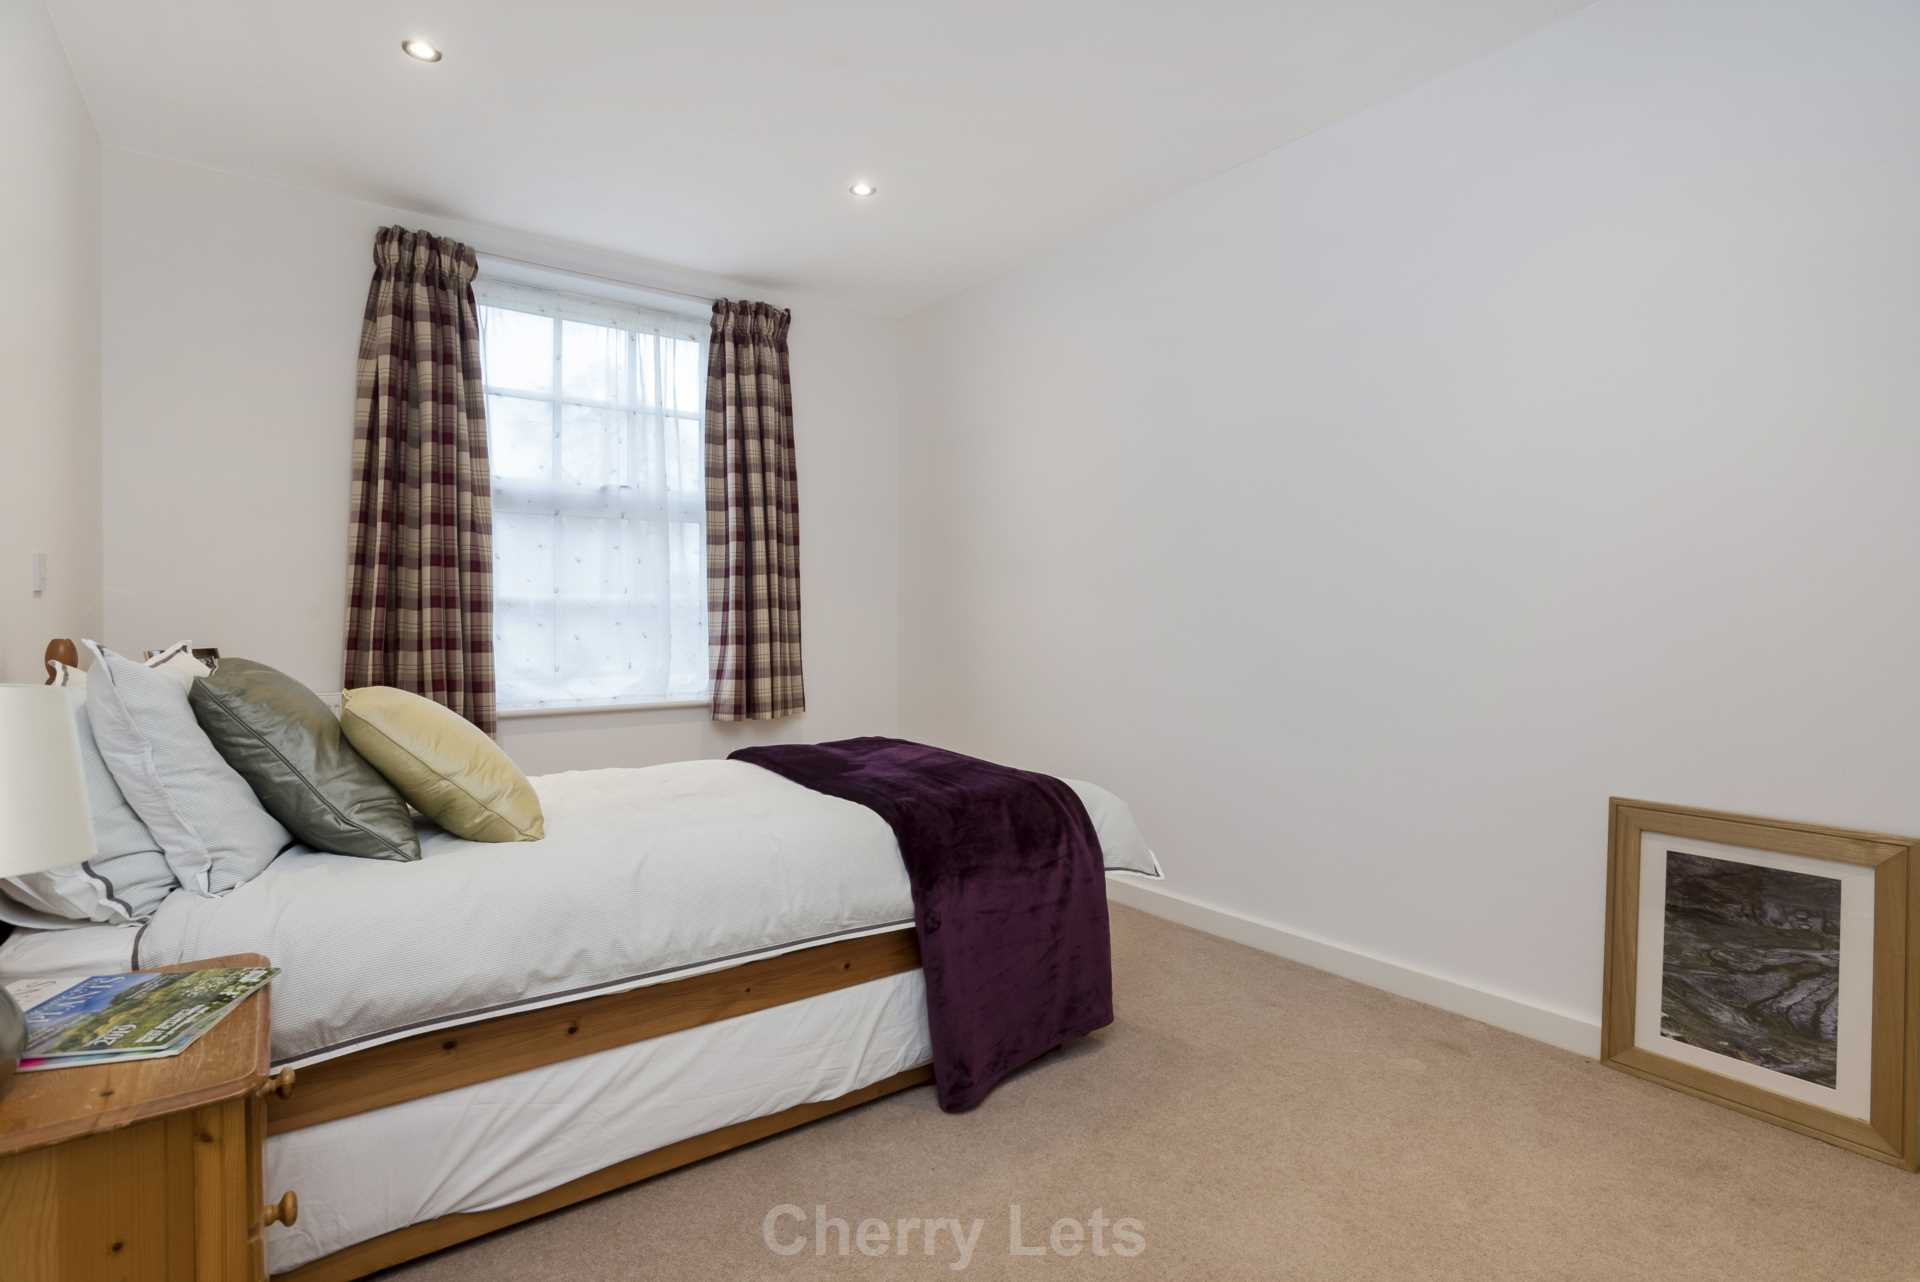 2 bed apartment to rent in Astrop Grange, Kings Sutton, OX17 8